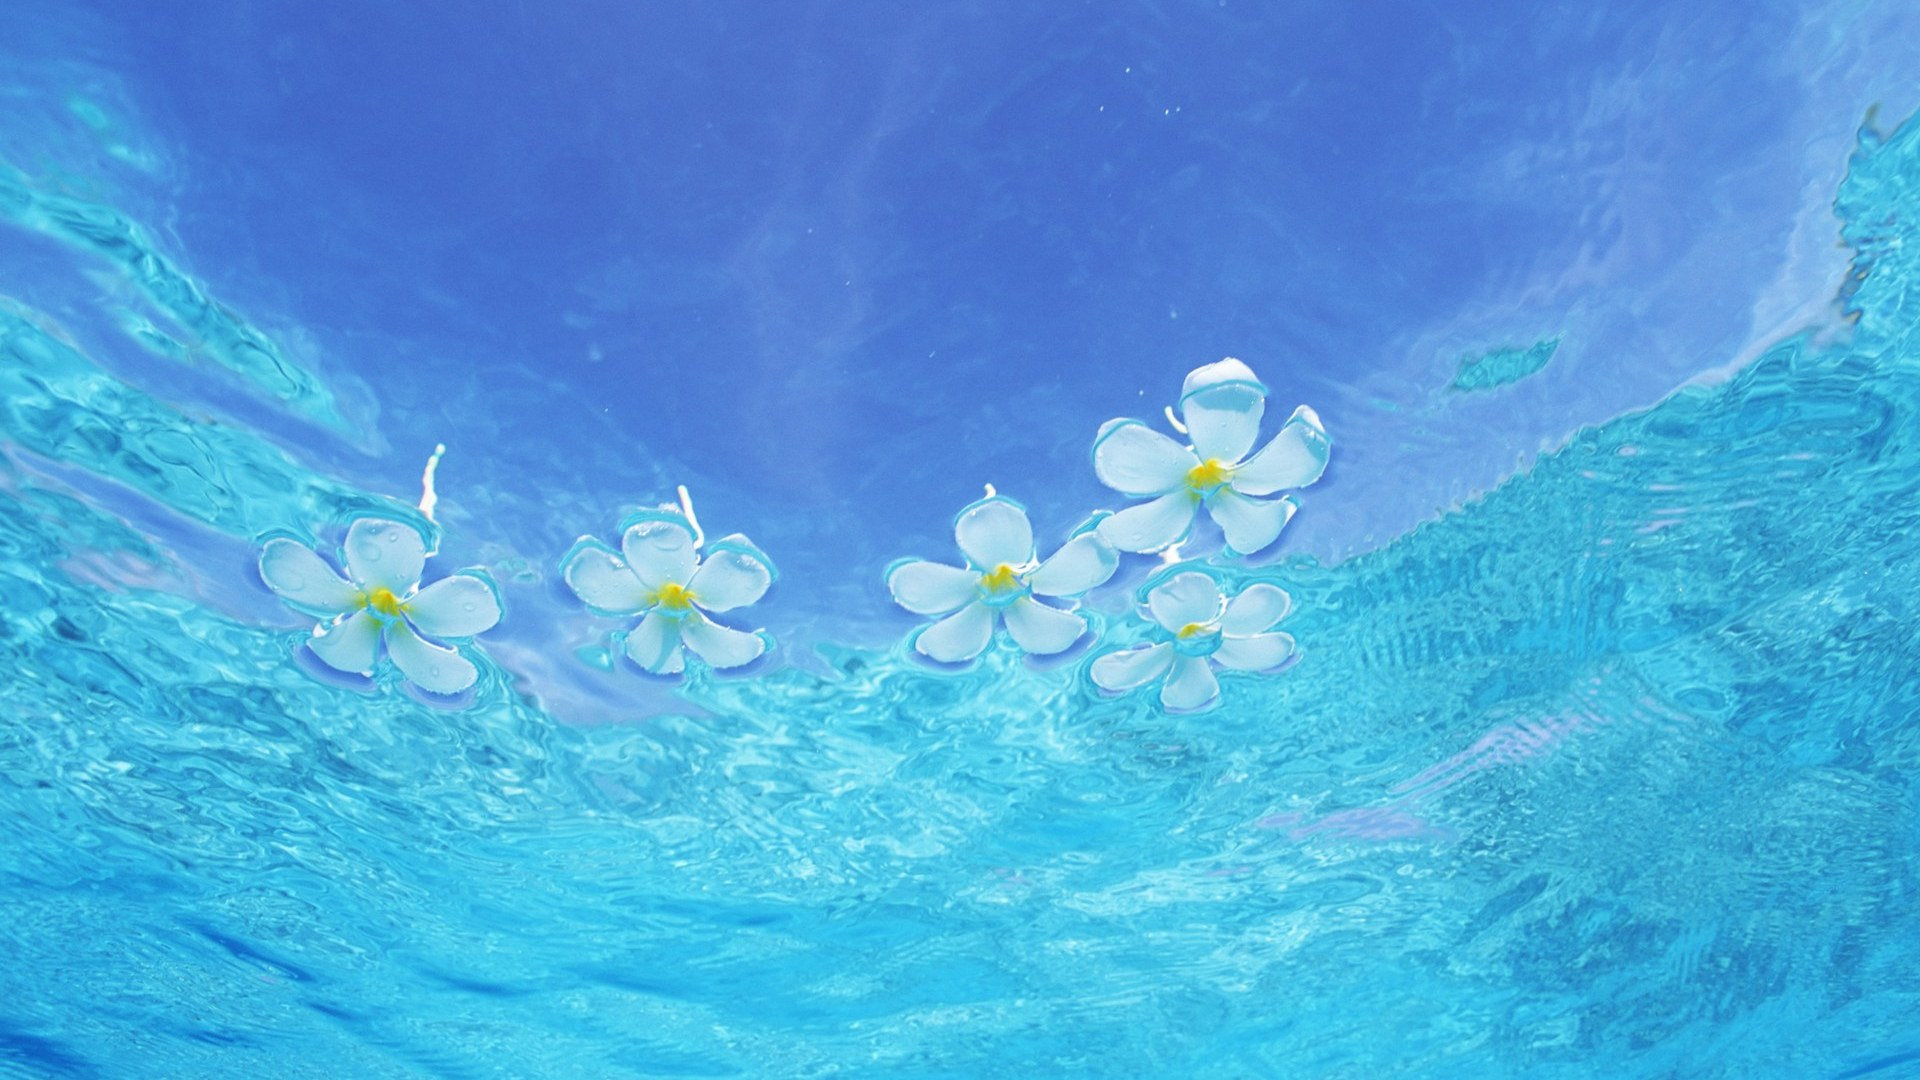 Water Full HD Wallpaper and Background 1920x1080 ID212421 1920x1080